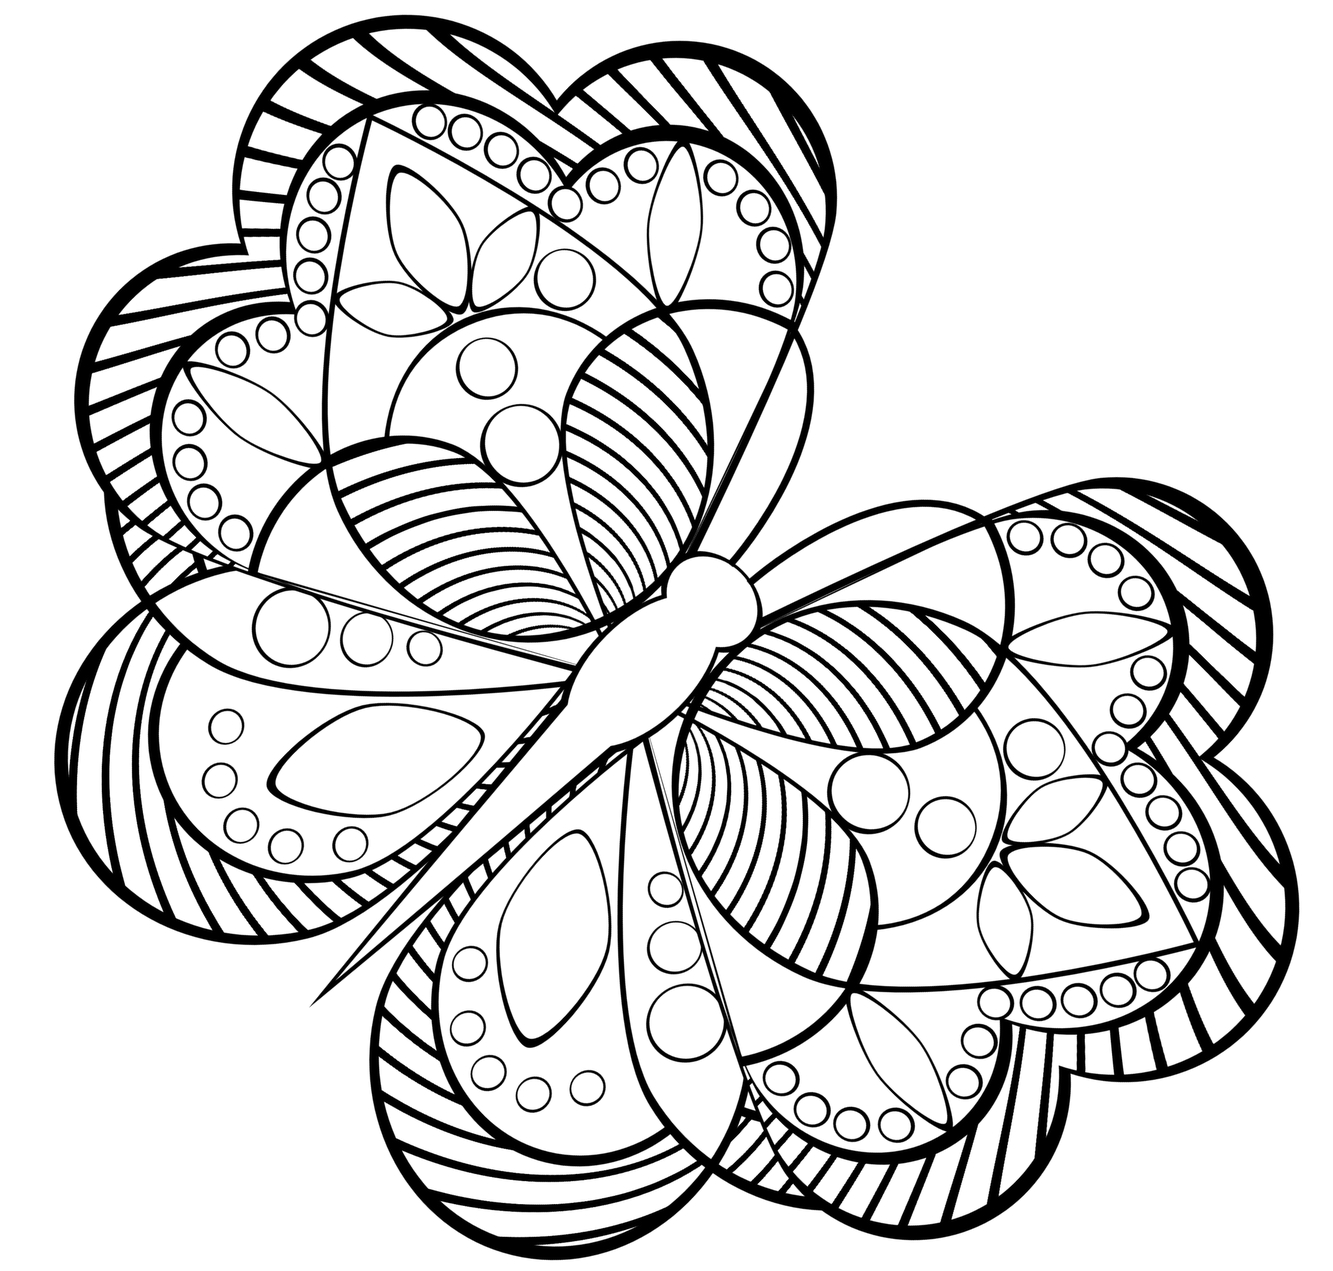 1333x1271 Therapy Coloring Pages To Download And Print For Free